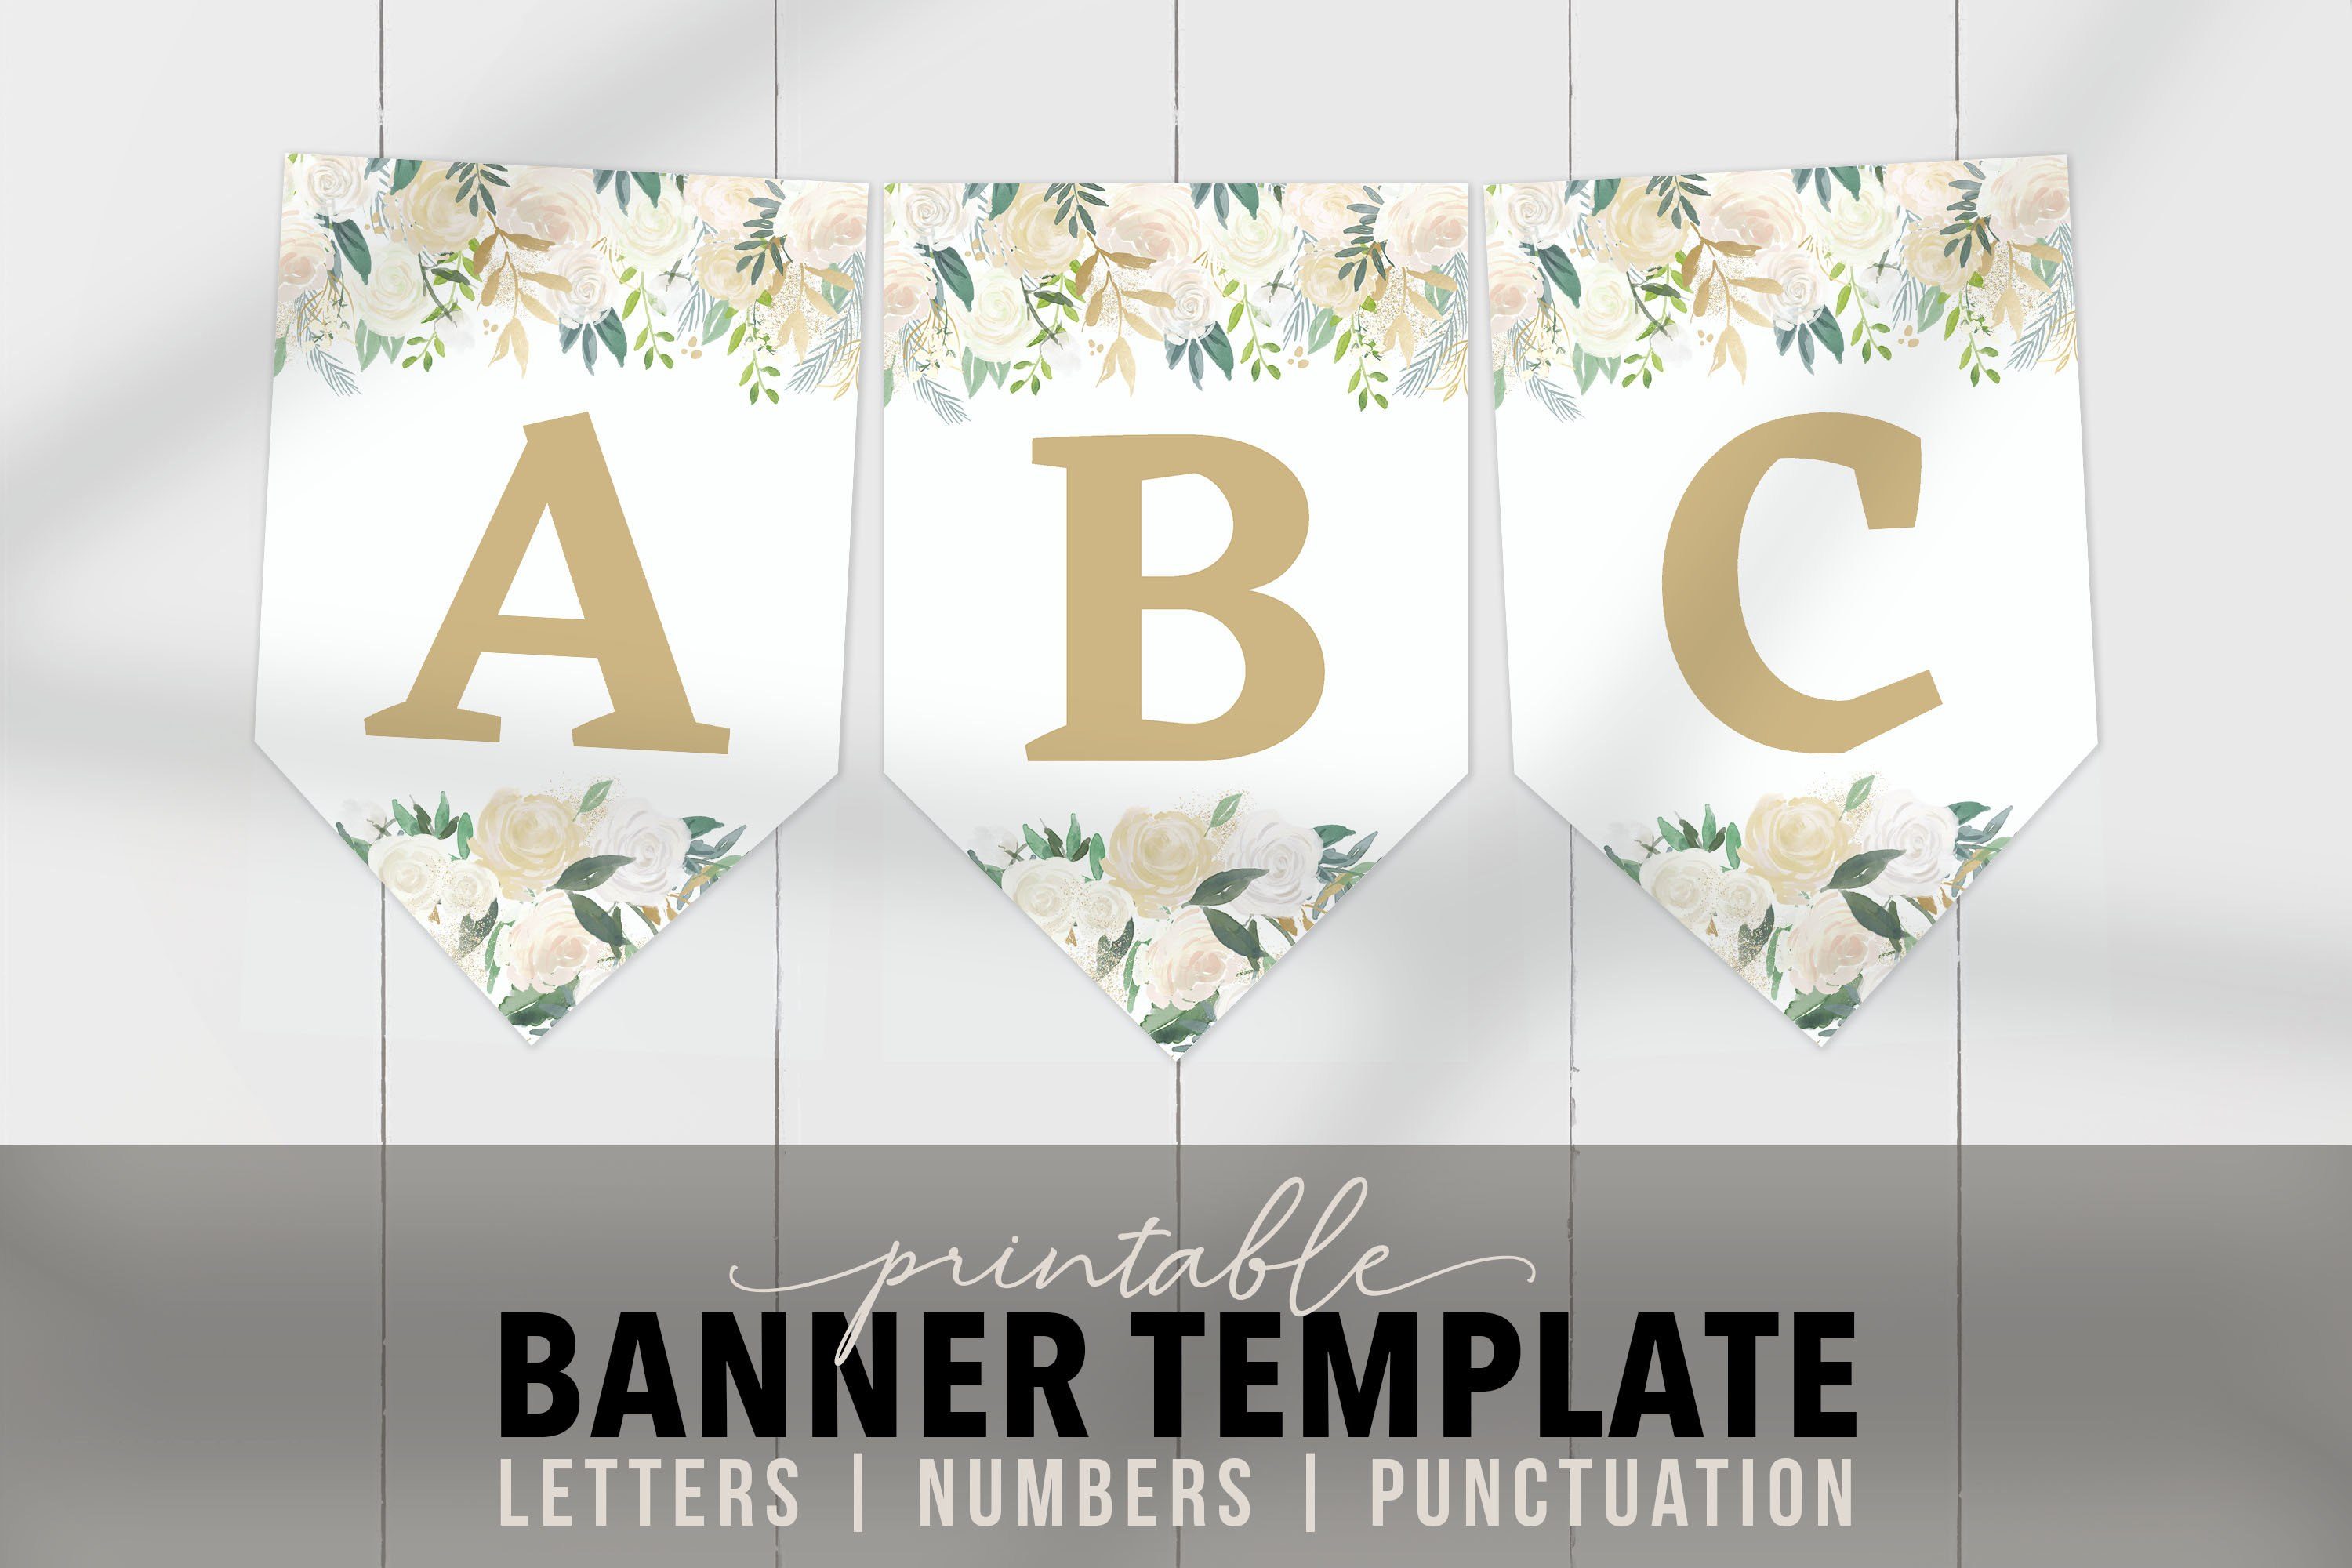 Printable Bridal Banner Template  Floral Banner Flags  Editable Printable  Banner Letters Pdf Bridal Birthday Baby Shower Party Banner Pertaining To Bride To Be Banner Template